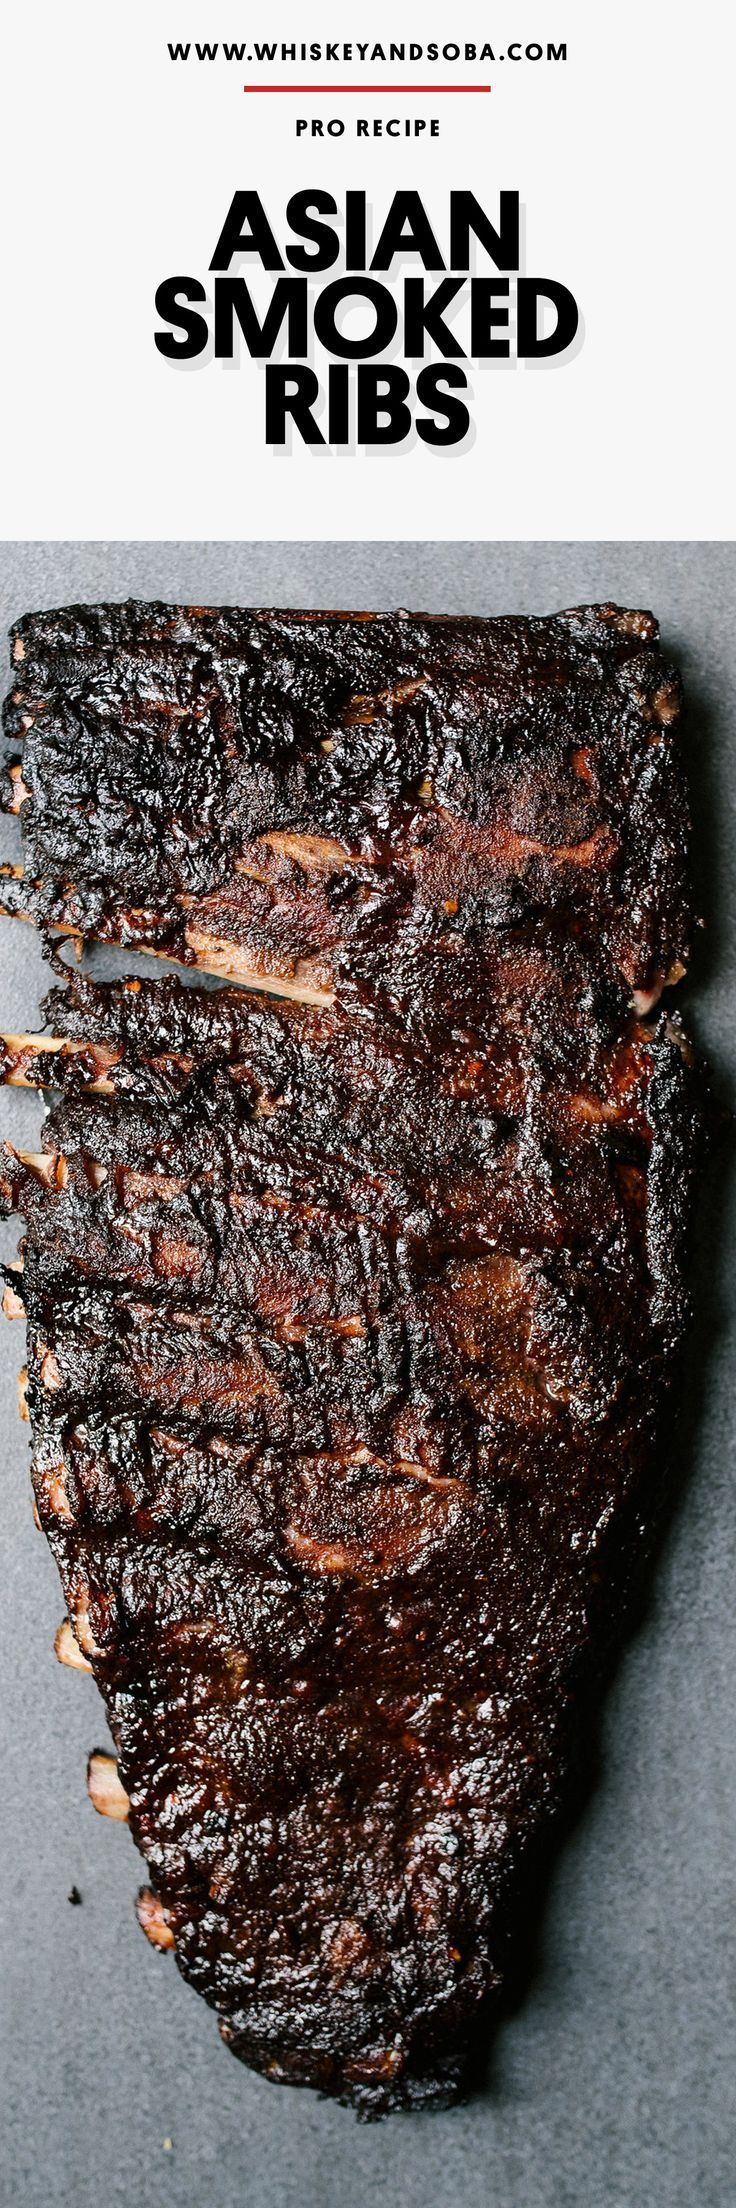 Smoky, spicy, tangy - all around amazing. Blow away your friends and neighbors with these incredible, fall-apart tender pork ribs this summer!